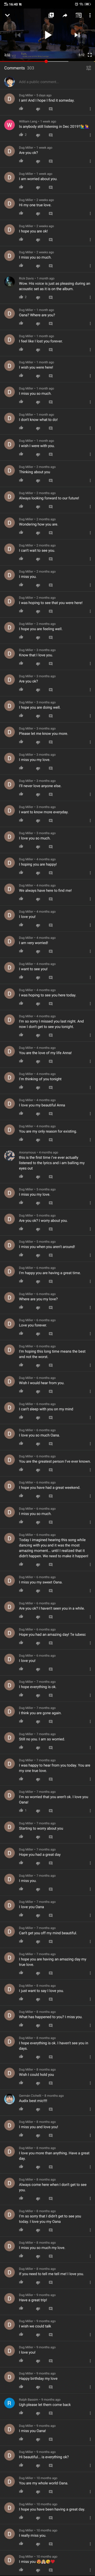 True love (original post by u/ShimmyPotato ): 4G1 16:40  fun.  KINK Live at the Bing Lounge  5:12 E  2:32  Comments 303  Add a public comment..  Dug Miller · 5 days ago  I am! And I hope I find it someday.  William Leng • 1 week ago  Is anybody still listening in Dec 2019?  It 2  Dug Miller · 1 week ago  Are you ok?  Dug Miller • 1 week ago  I am worried about you.  Dug Miller · 2 weeks ago  Hi my one true love.  Dug Miller · 2 weeks ago  I hope you are ok!  Dug Miller · 2 weeks ago  I miss you so much.  Rick Davis • 1 month ago  Wow. His voice is just as pleasing during an  acoustic set as it is on the album.  It 2  Dug Miller • 1 month ago  Oana? Where are you?  Dug Miller • 1 month ago  I feel like I lost you forever.  Dug Miller • 1 month ago  I wish you were here!  Dug Miller · 1 month ago  I miss you so much.  Dug Miller • 1 month ago  I don't know what to do!  Dug Miller • 1 month ago  I wish I were with you.  Dug Miller • 2 months ago  Thinking about you  Dug Miller · 2 months ago  Always looking forward to our future!  Dug Miller · 2 months ago  Wondering how you are.  Dug Miller · 2 months ago  I can't wait to see you.  Dug Miller · 2 months ago  I miss you.  Dug Miller · 2 months ago  I was hoping to see that you were here!  Dug Miller · 2 months ago  I hope you are feeling well.  Dug Miller · 3 months ago  Know that I love you.  Dug Miller · 3 months ago  Are you ok?  Dug Miller · 3 months ago  I hope you are doing well.  Dug Miller · 3 months ago  Please let me know you more.  Dug Miller · 3 months ago  I miss you my love.  Dug Miller • 3 months ago  I'll never love anyone else.  Dug Miller · 3 months ago  I want to know more everyday.  Dug Miller • 3 months ago  I love you so much.  Dug Miller · 4 months ago  I hoping you are happy!  Dug Miller · 4 months ago  We always have here to find me!  Dug Miller · 4 months ago  I love you!  Dug Miller · 4 months ago  I am very worried!  Dug Miller · 4 months ago  I want to see you!  Dug Miller · 4 months ago  I